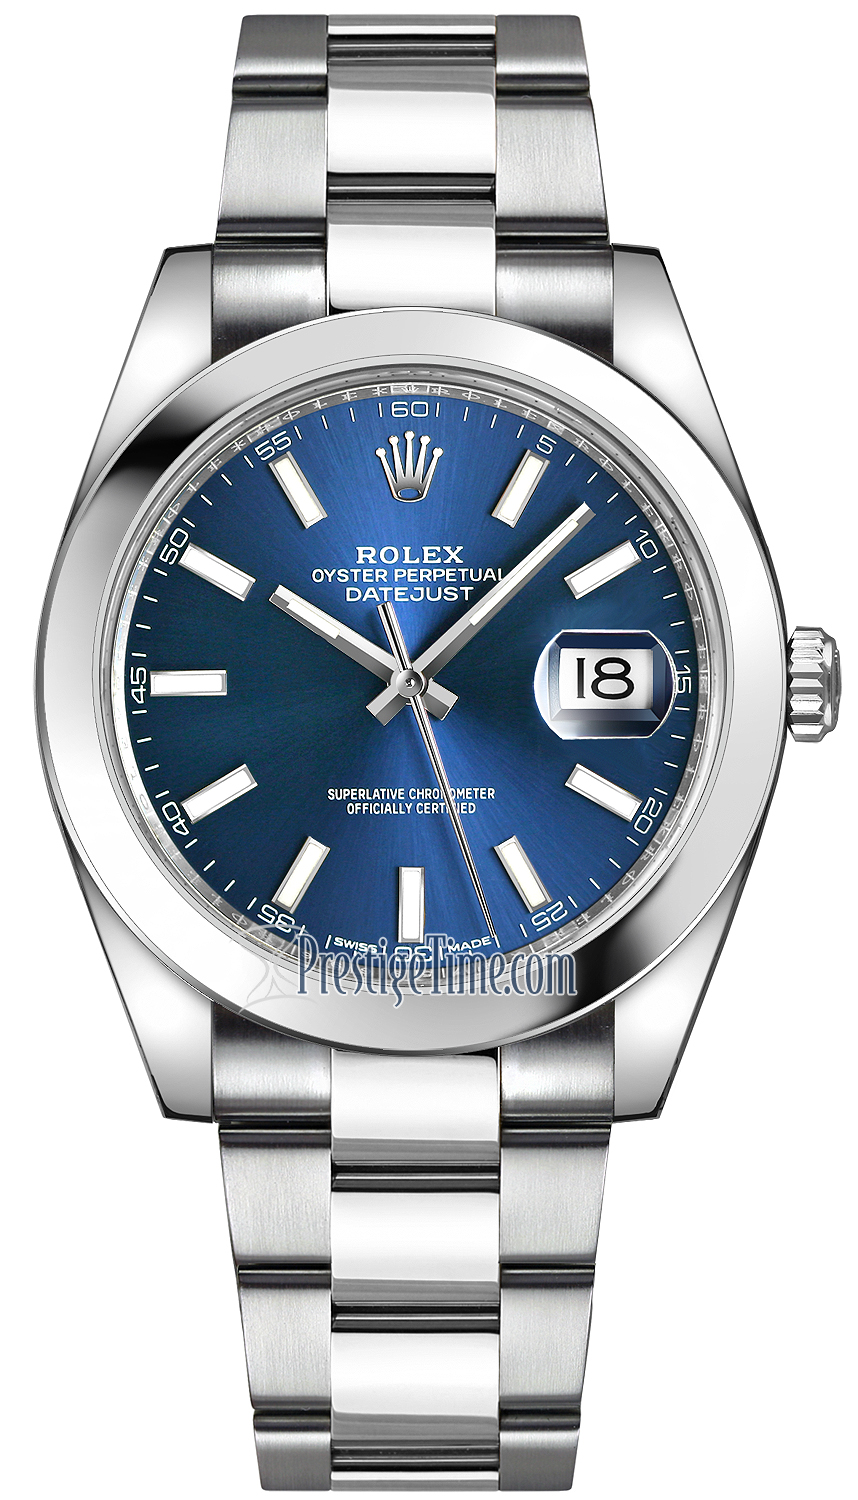 Steel Rolex Rolex Datejust 41mm Stainless Steel 126300 Blue Index Oyster